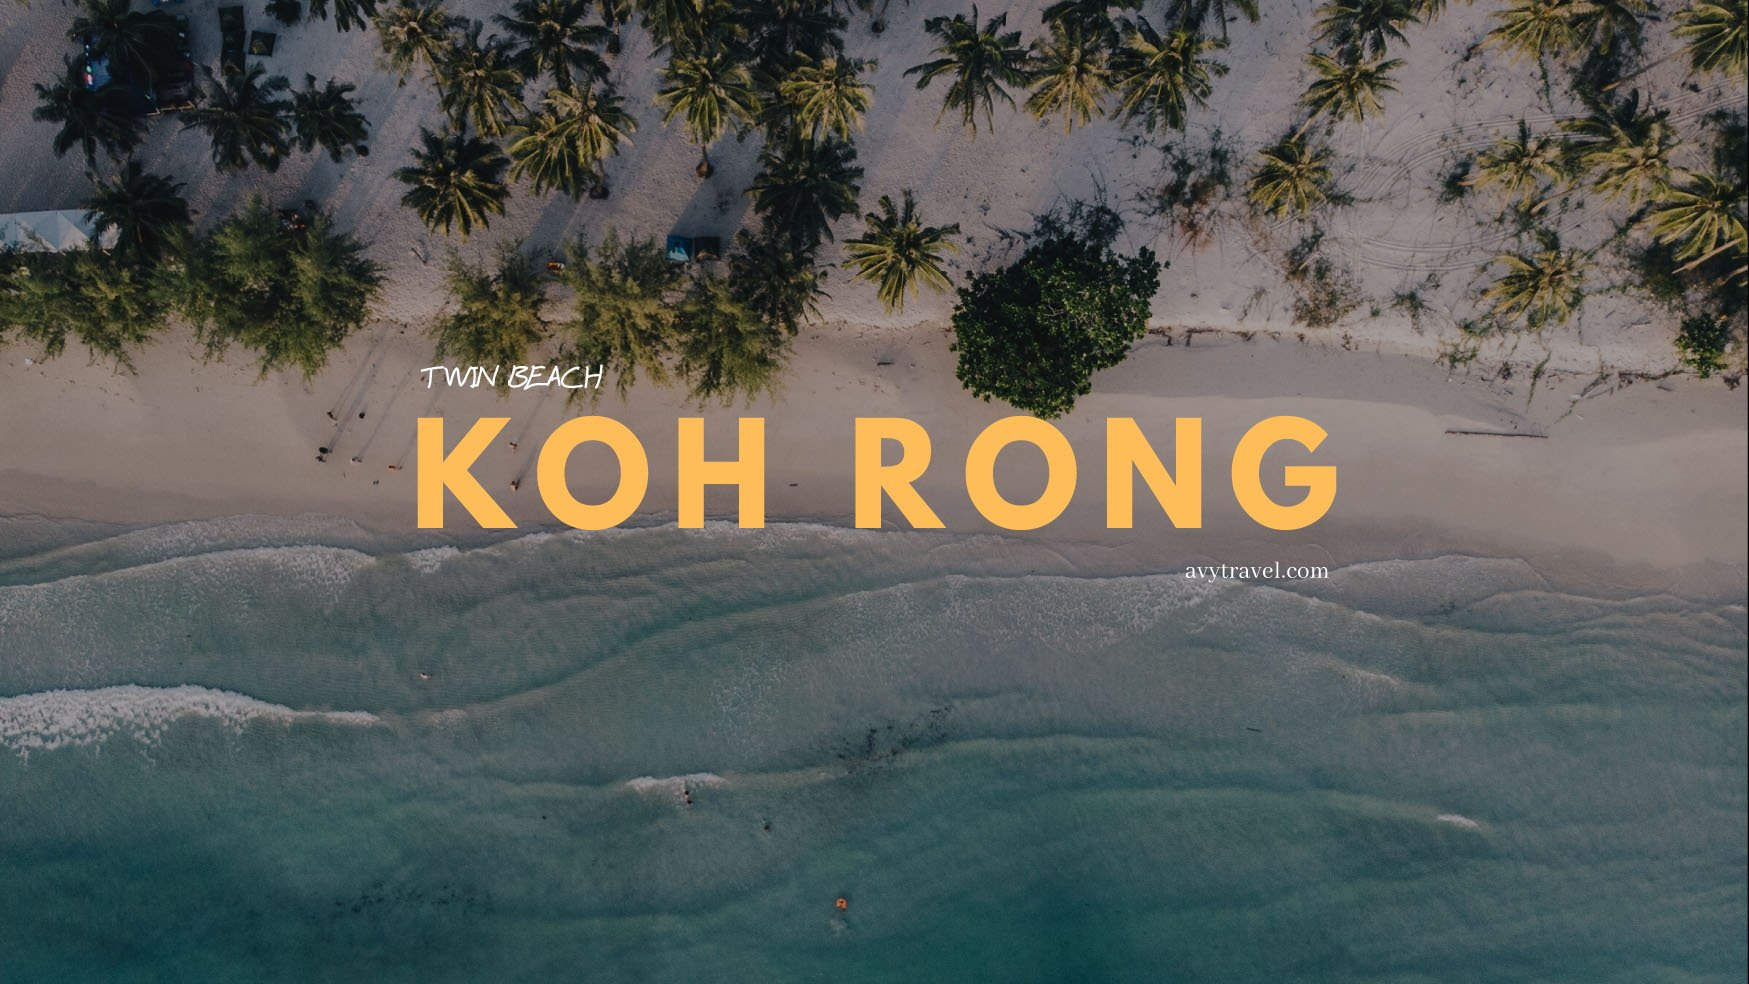 Koh Rong: Twin Beach (Koh Thansour)